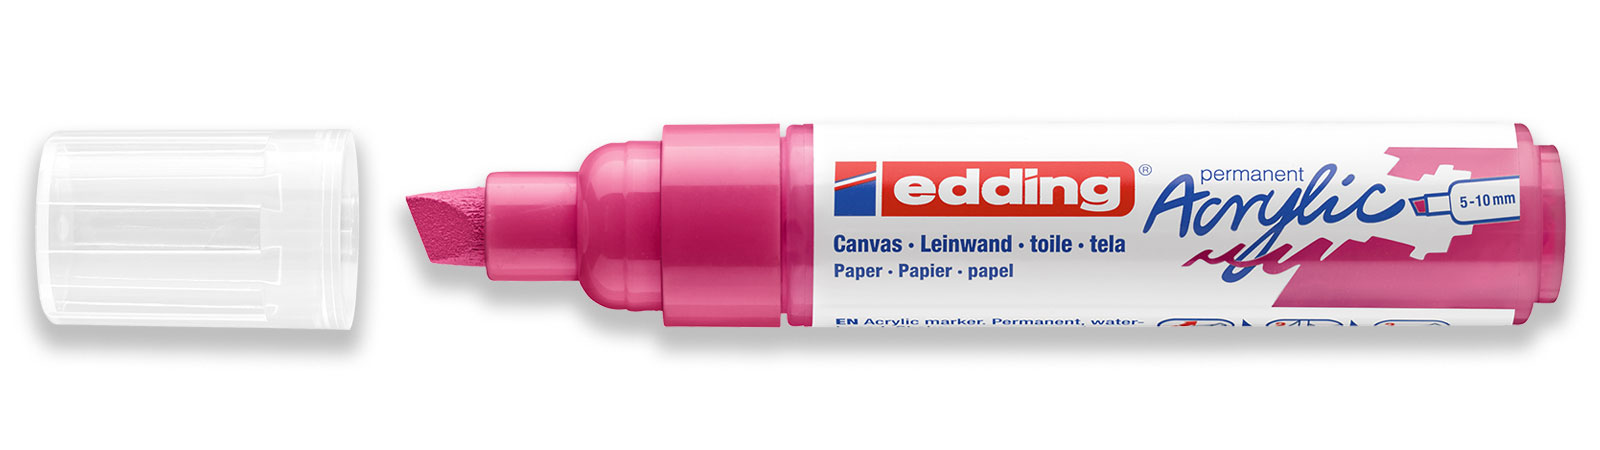 edding acrylic marker broad in pink